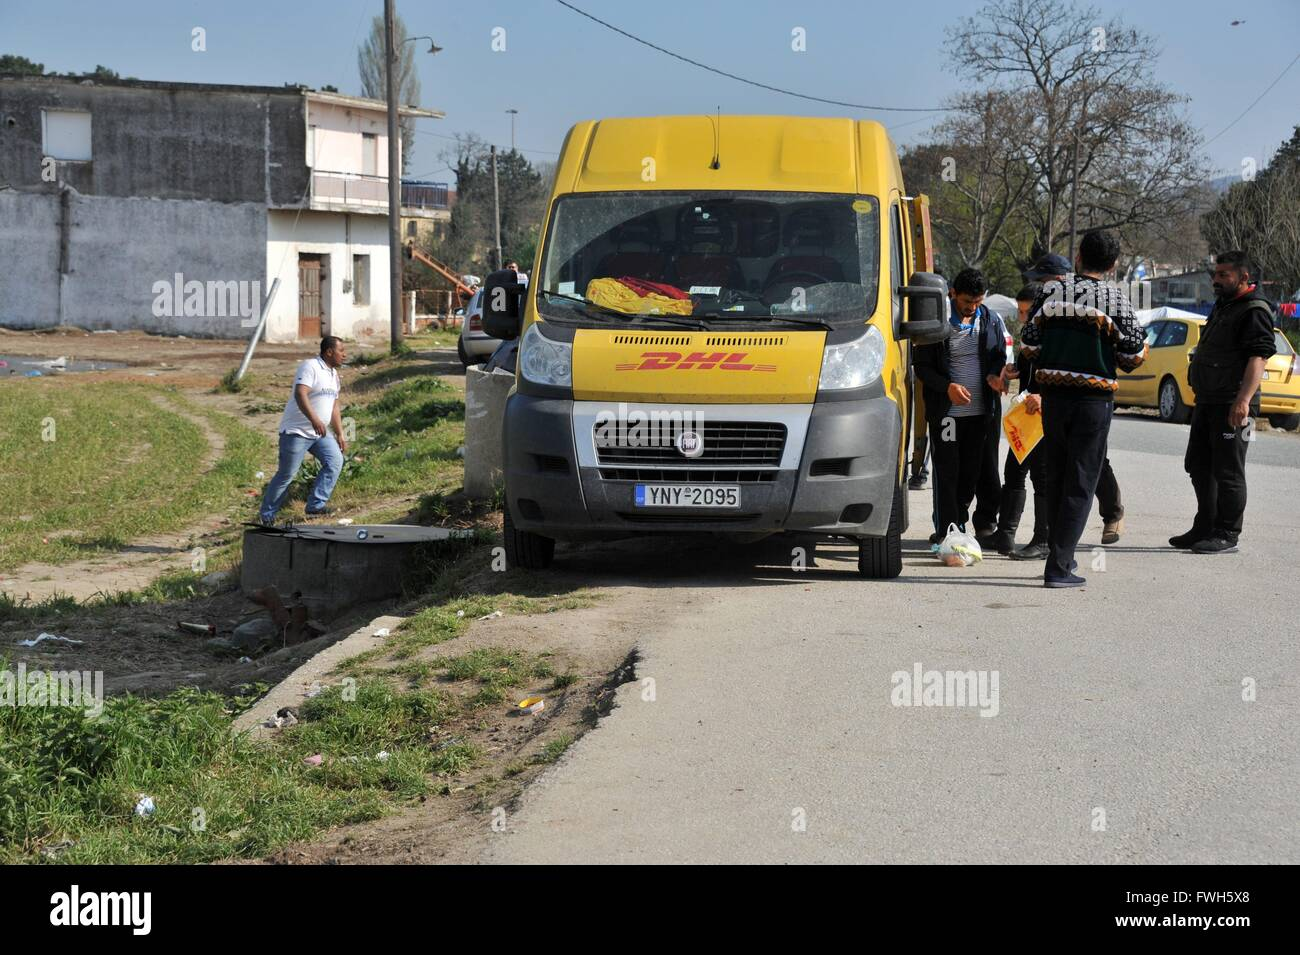 Even DHL comes to Idomeni . - 29 March 2016 - Stock Image